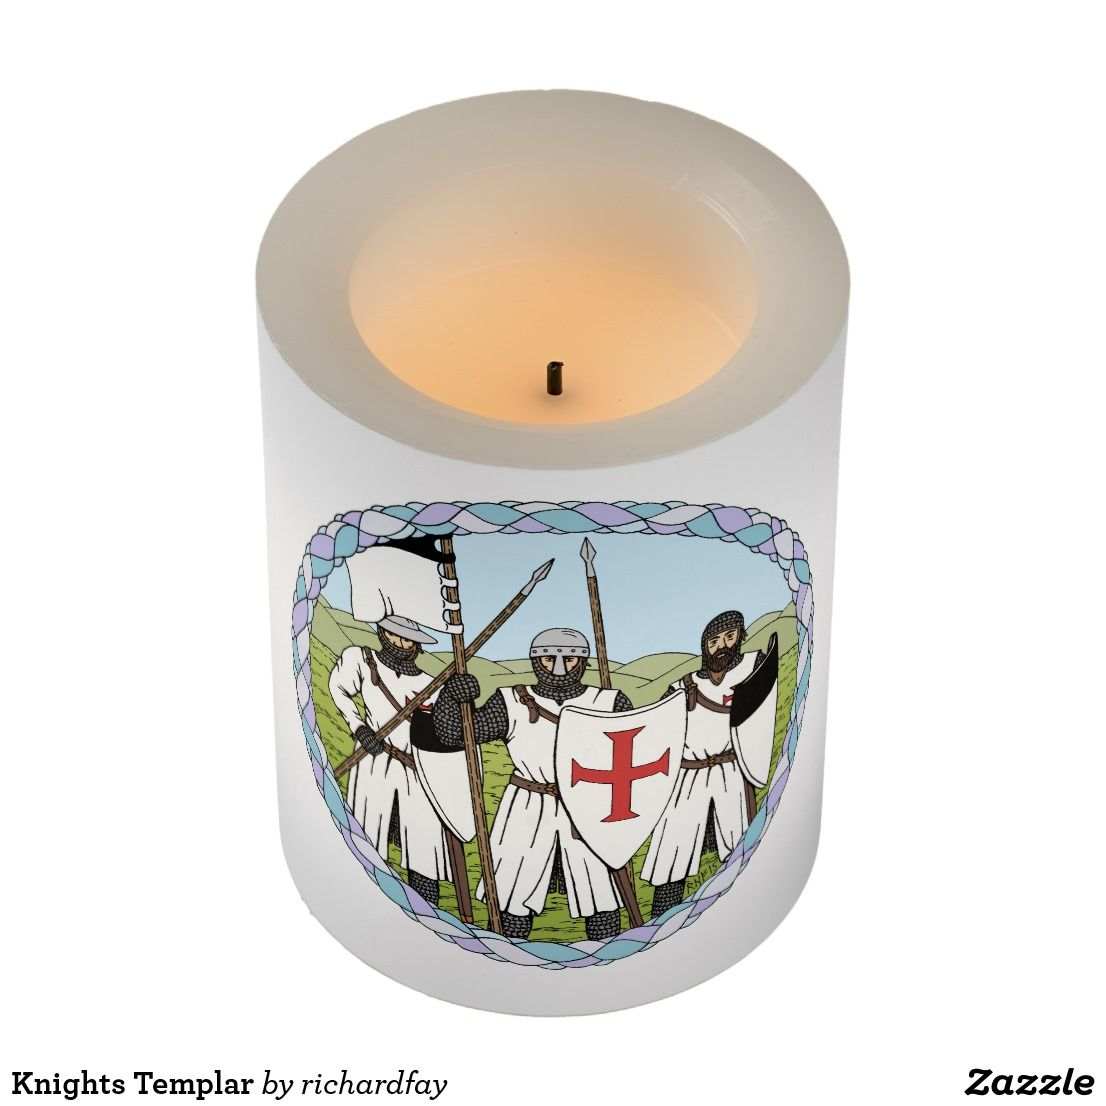 Knights Templar Flameless Candle.  50% Off with code ZAZZLEDESIGN.  Last Day!  Offer is valid through August 4, 2017, 11:59 PM PT.  #Zazzle #candle #flameless_candle #LED_candle #Knights_Templar #Templars #medieval_knights #crusader_knights #knights #crusaders